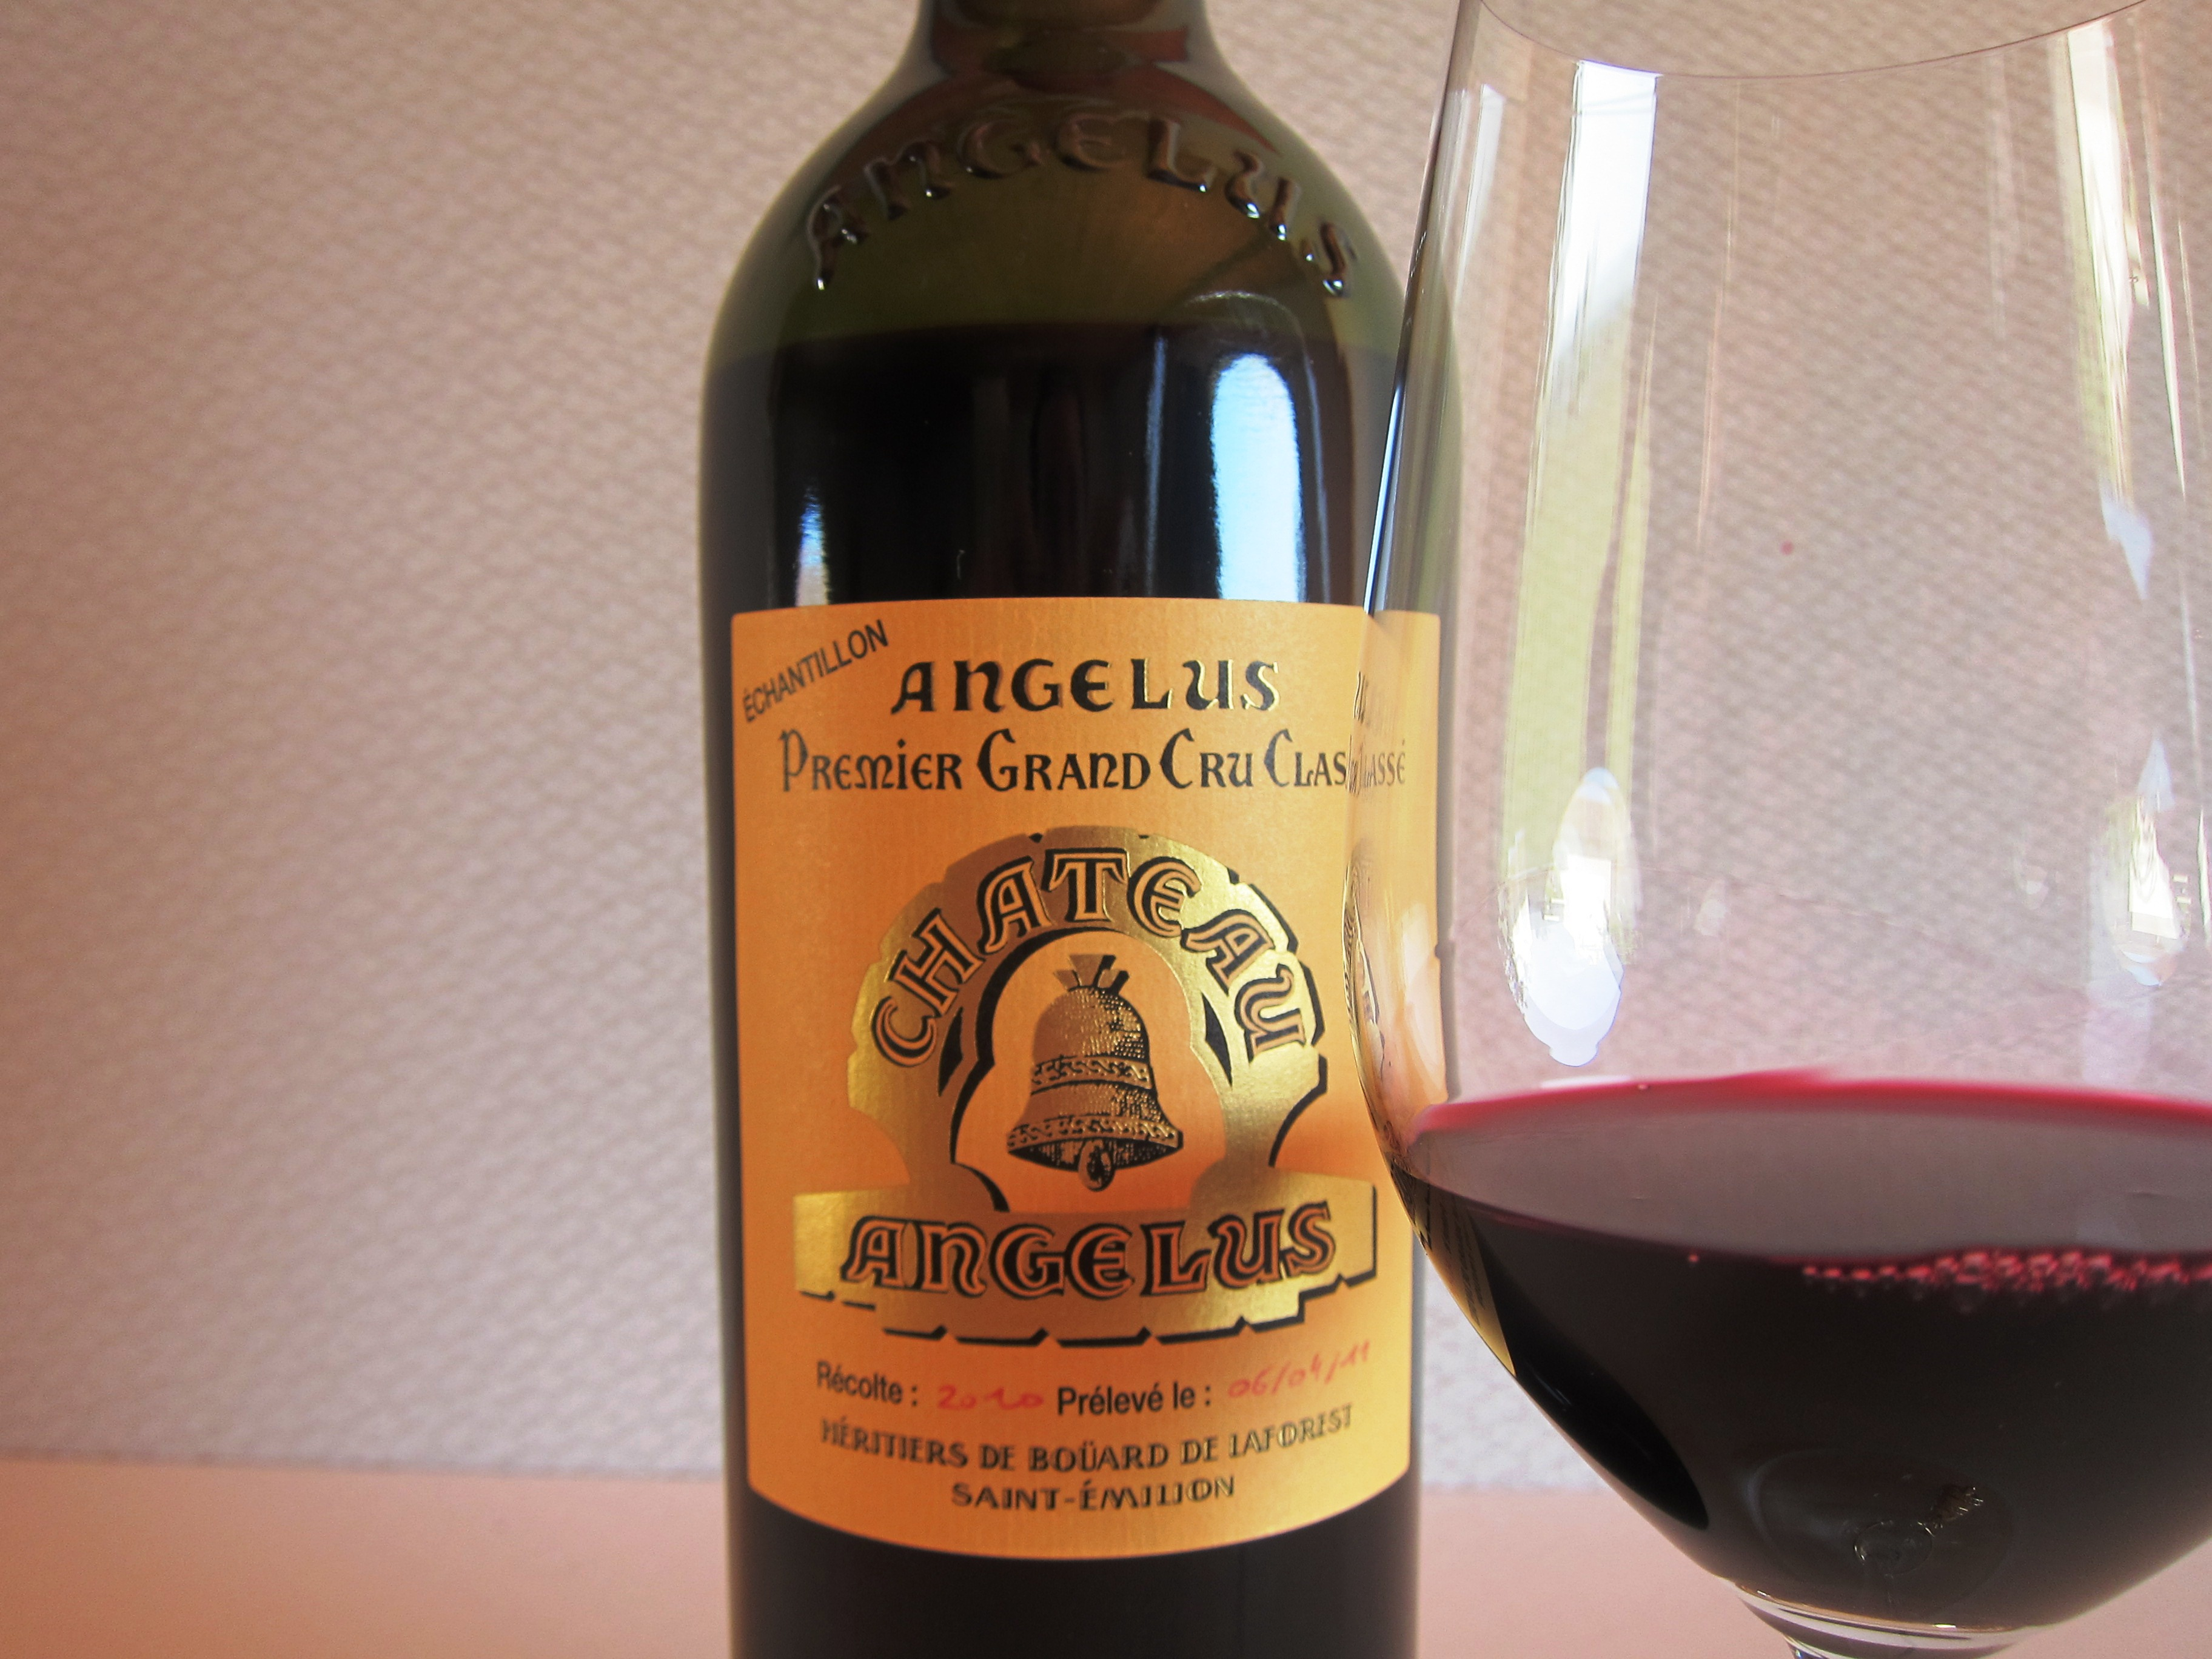 2010 angelus tasting notes show cashmere tannins intensity for Chateau angelus